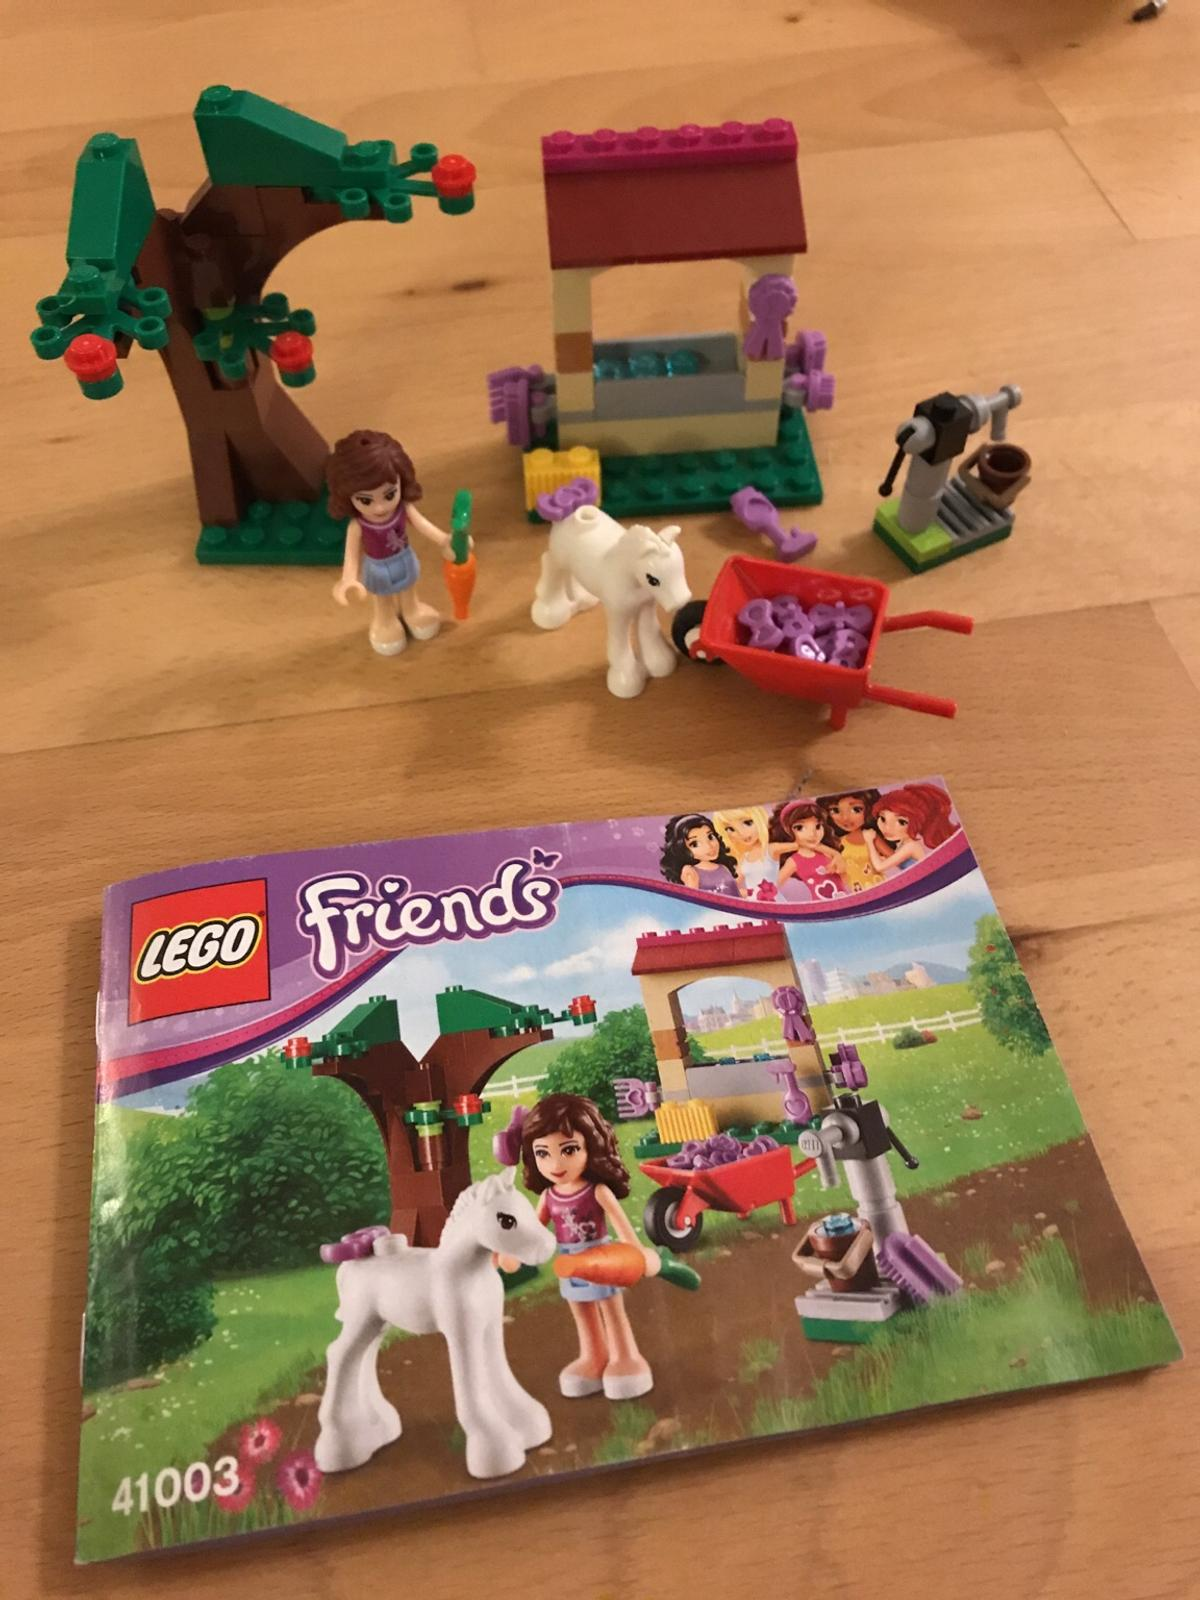 Lego Friends 41003 In 67482 Altdorf For 800 For Sale Shpock